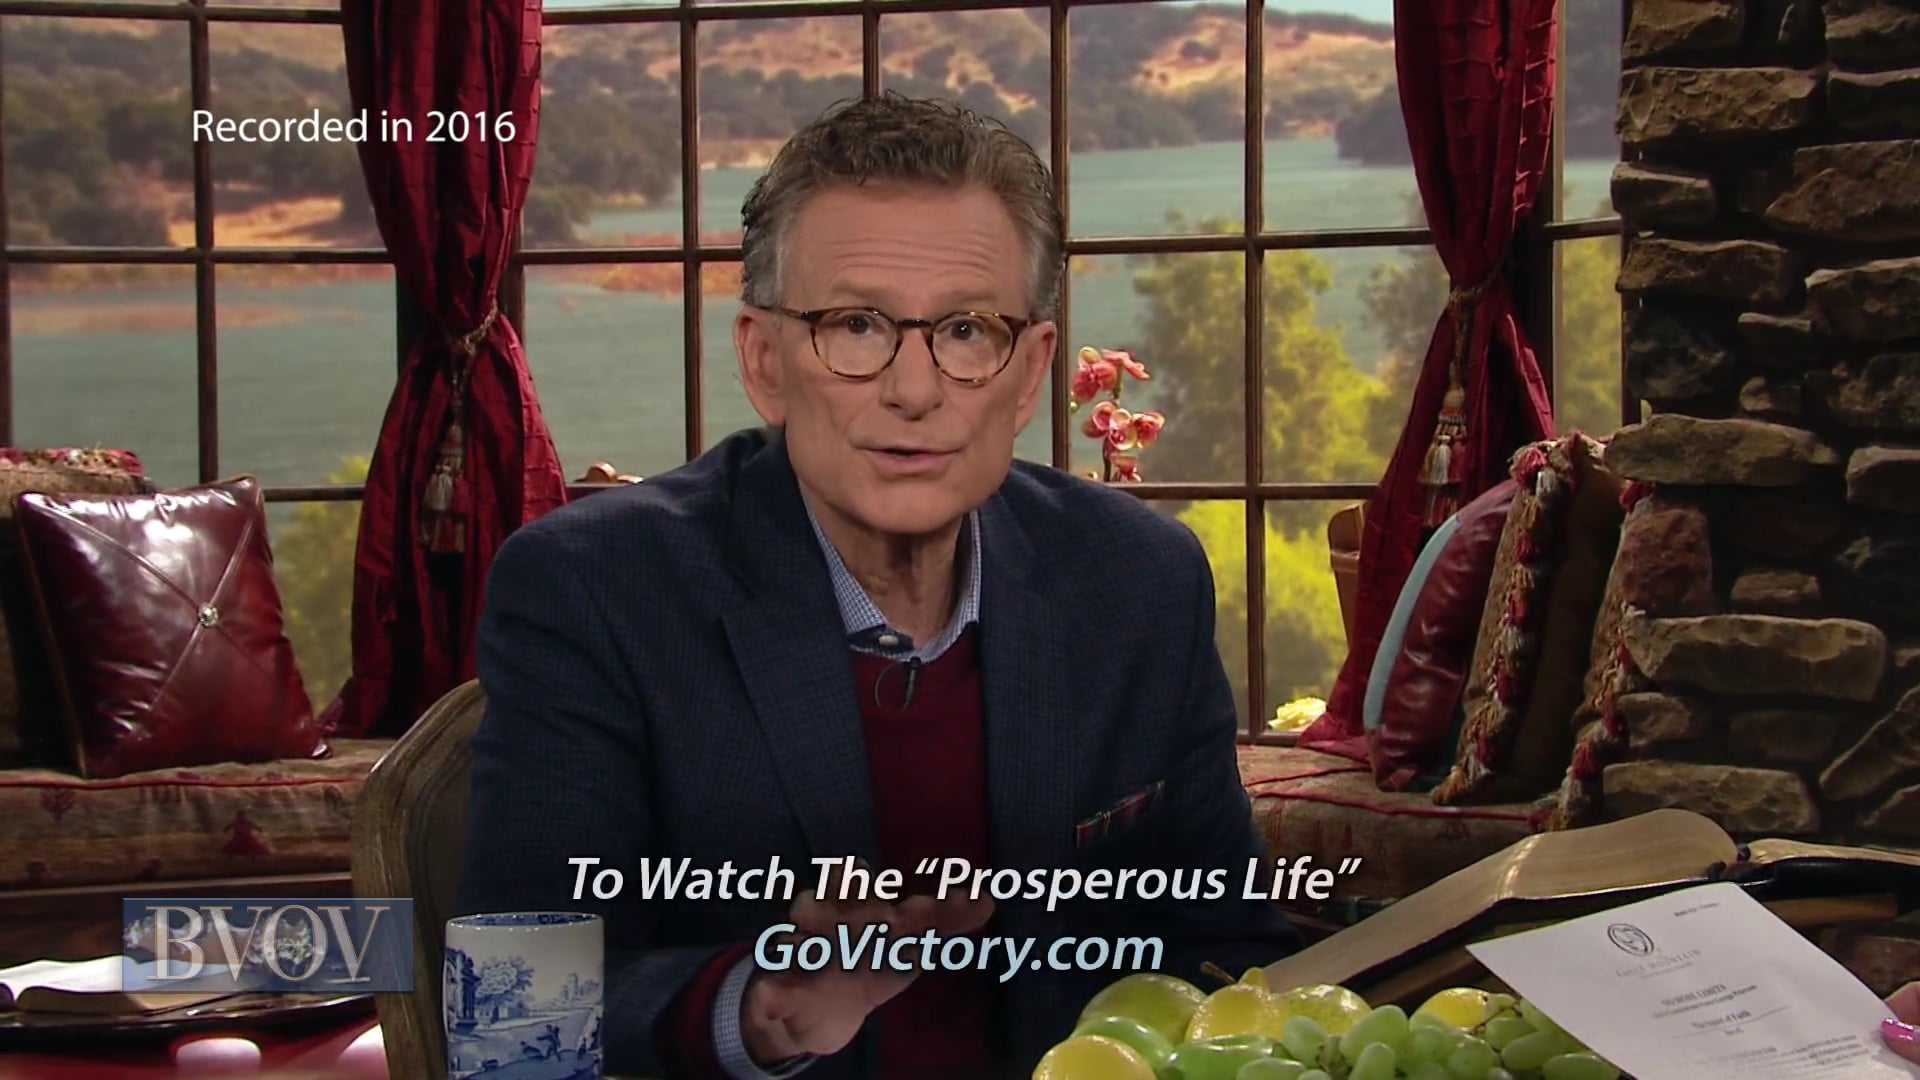 """Are you ready to break through your limits? Watch Gloria Copeland and George Pearsons on Believer's Voice of Victory as they share the biggest limitation in life and why God challenges us to grow in faith. Learn how to engage the spirit of faith to shake off """"limiters,"""" and enlarge your capacity to believe and receive!"""